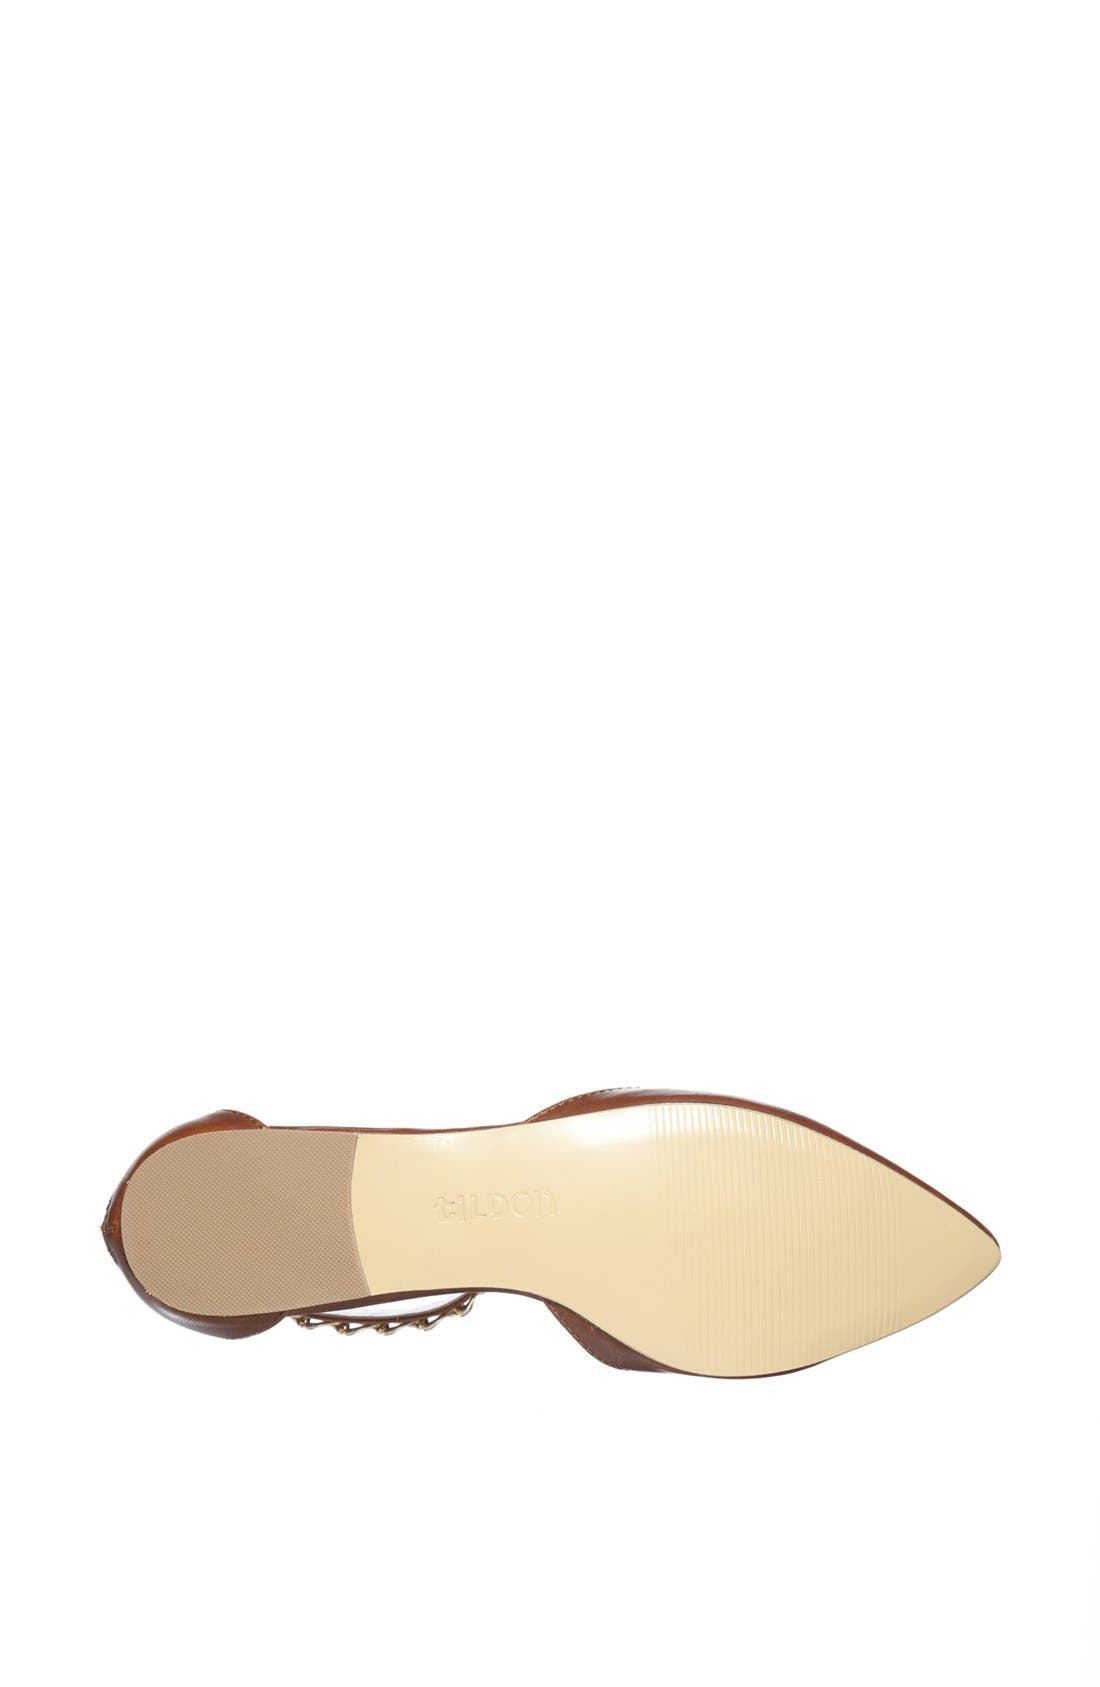 'Anya' Ankle Strap D'Orsay Flat,                             Alternate thumbnail 15, color,